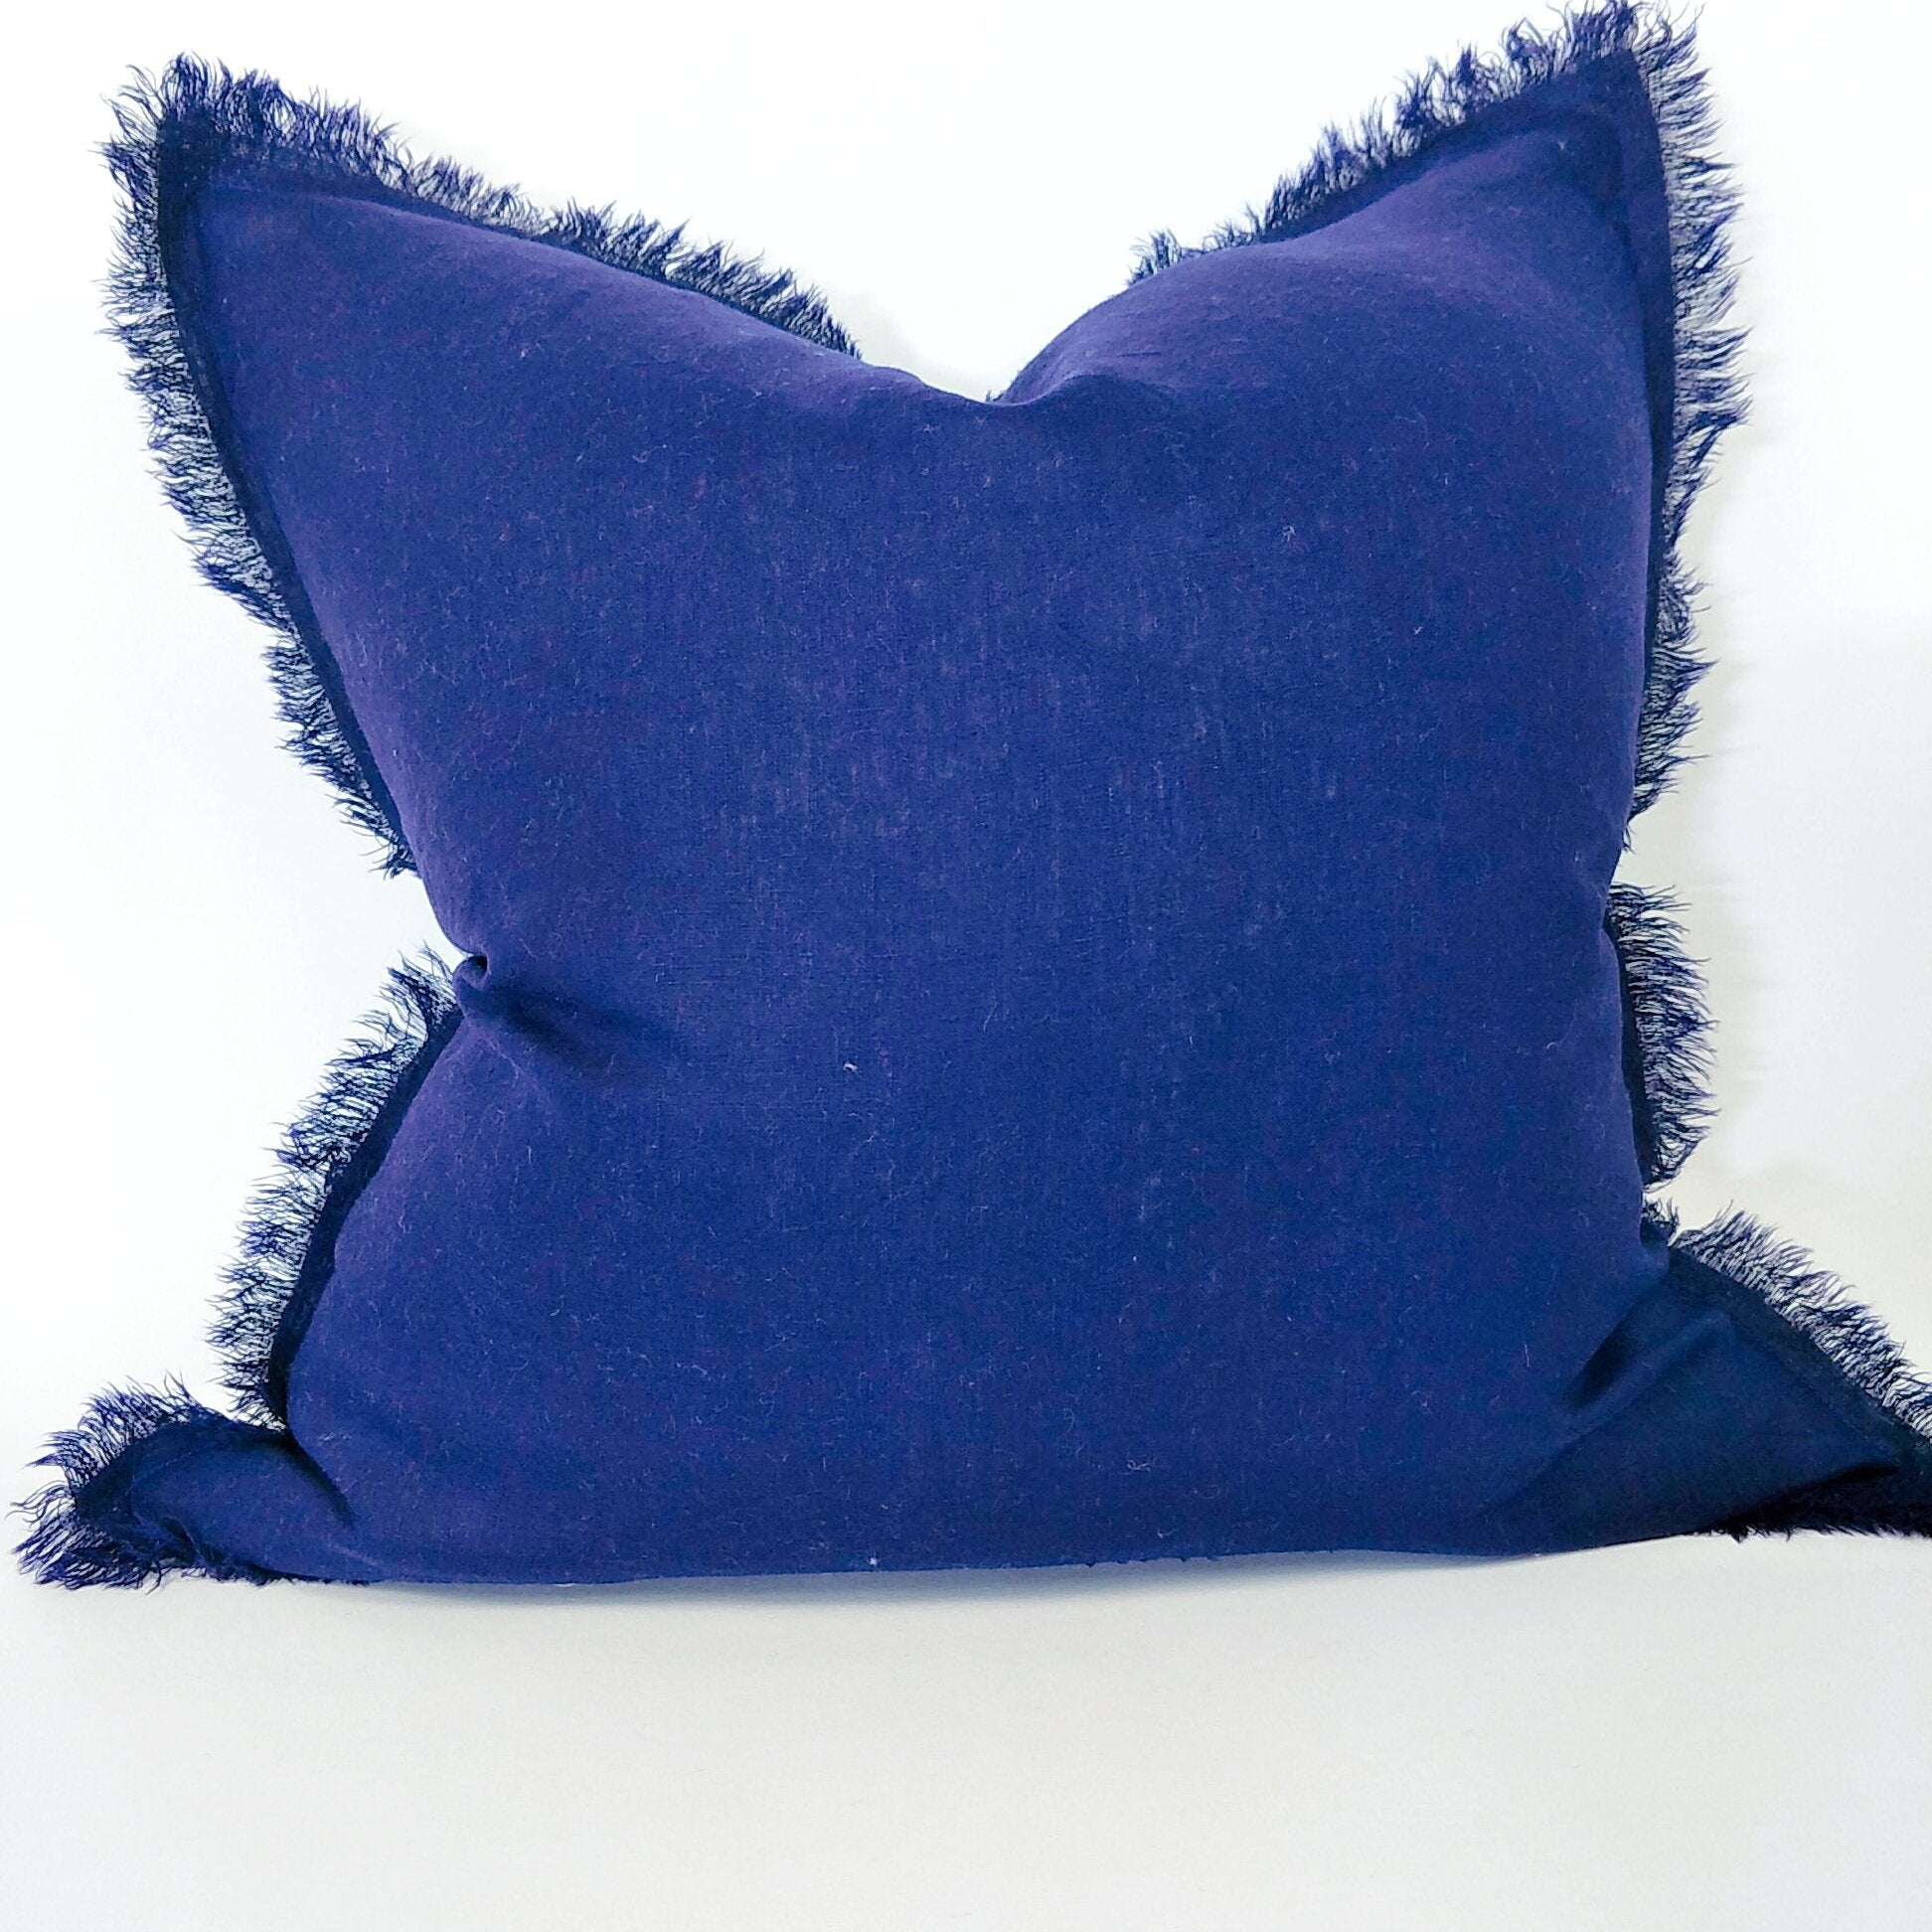 Cushion 100% French Linen Fringed Feather Inserts Navy 50 x 50cm